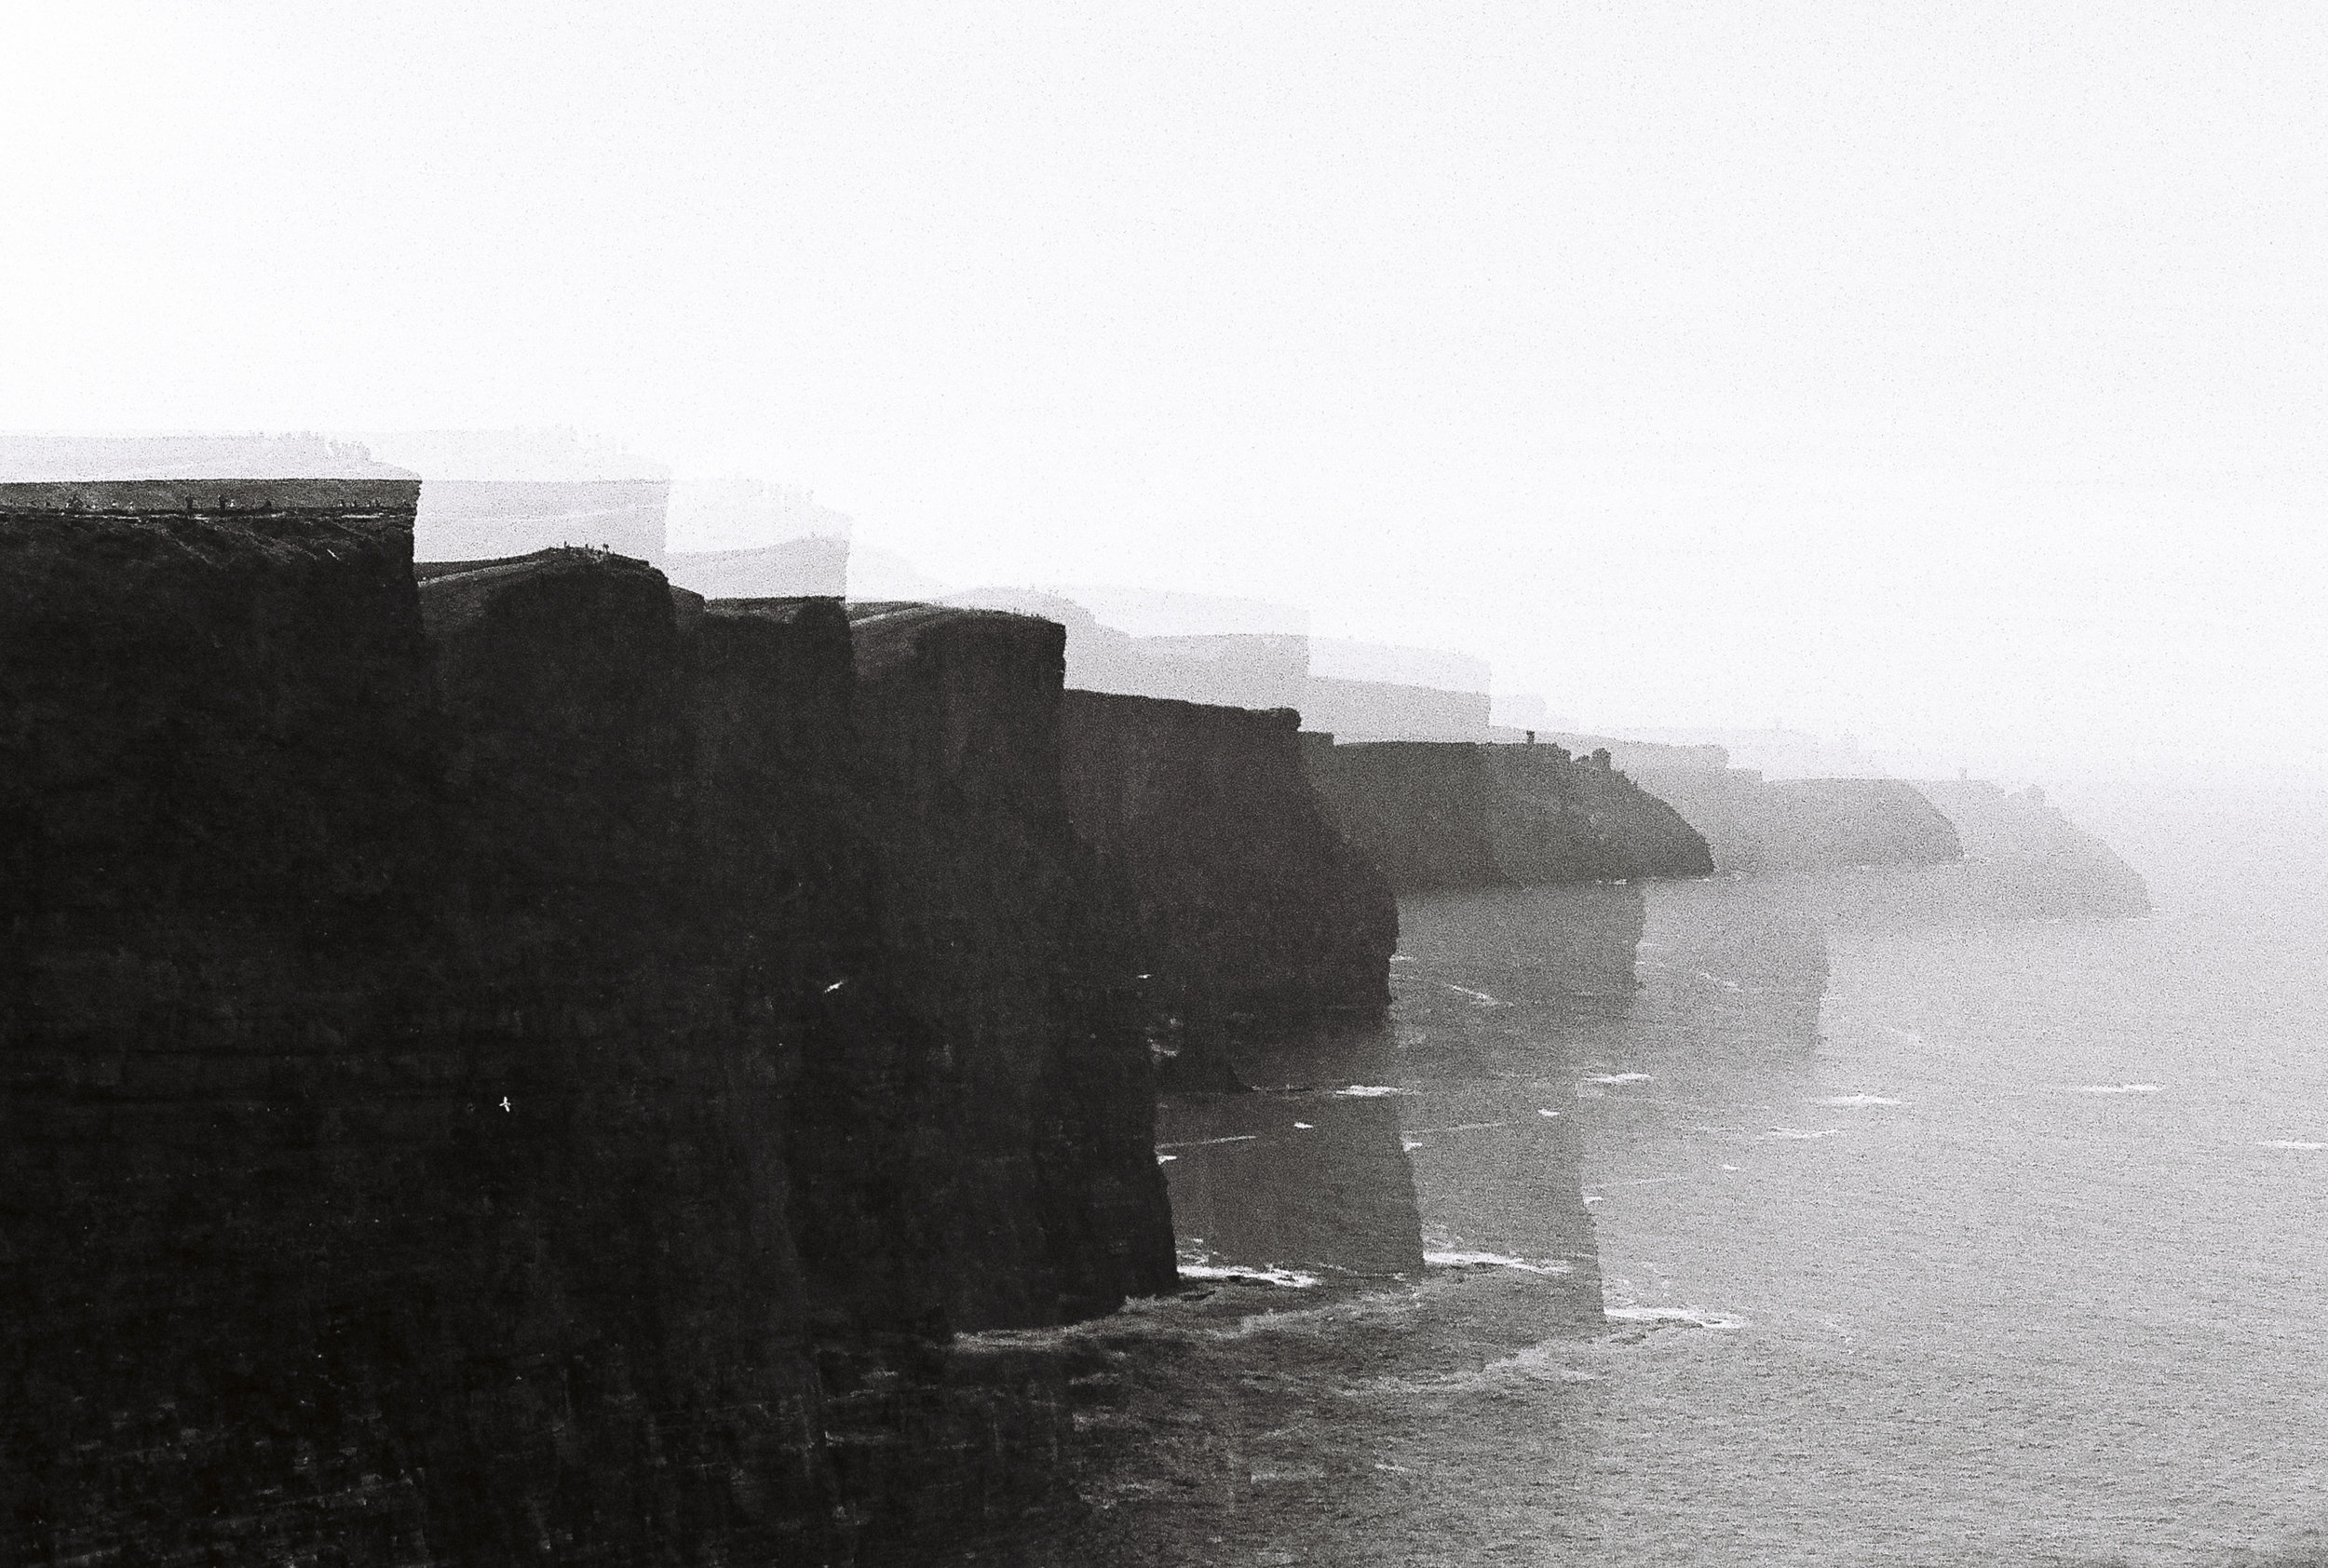 CS_20170417_CanonEOS10_IlfordHP5400_F144_Irlande_CliffsOfMoher (1)R.jpg